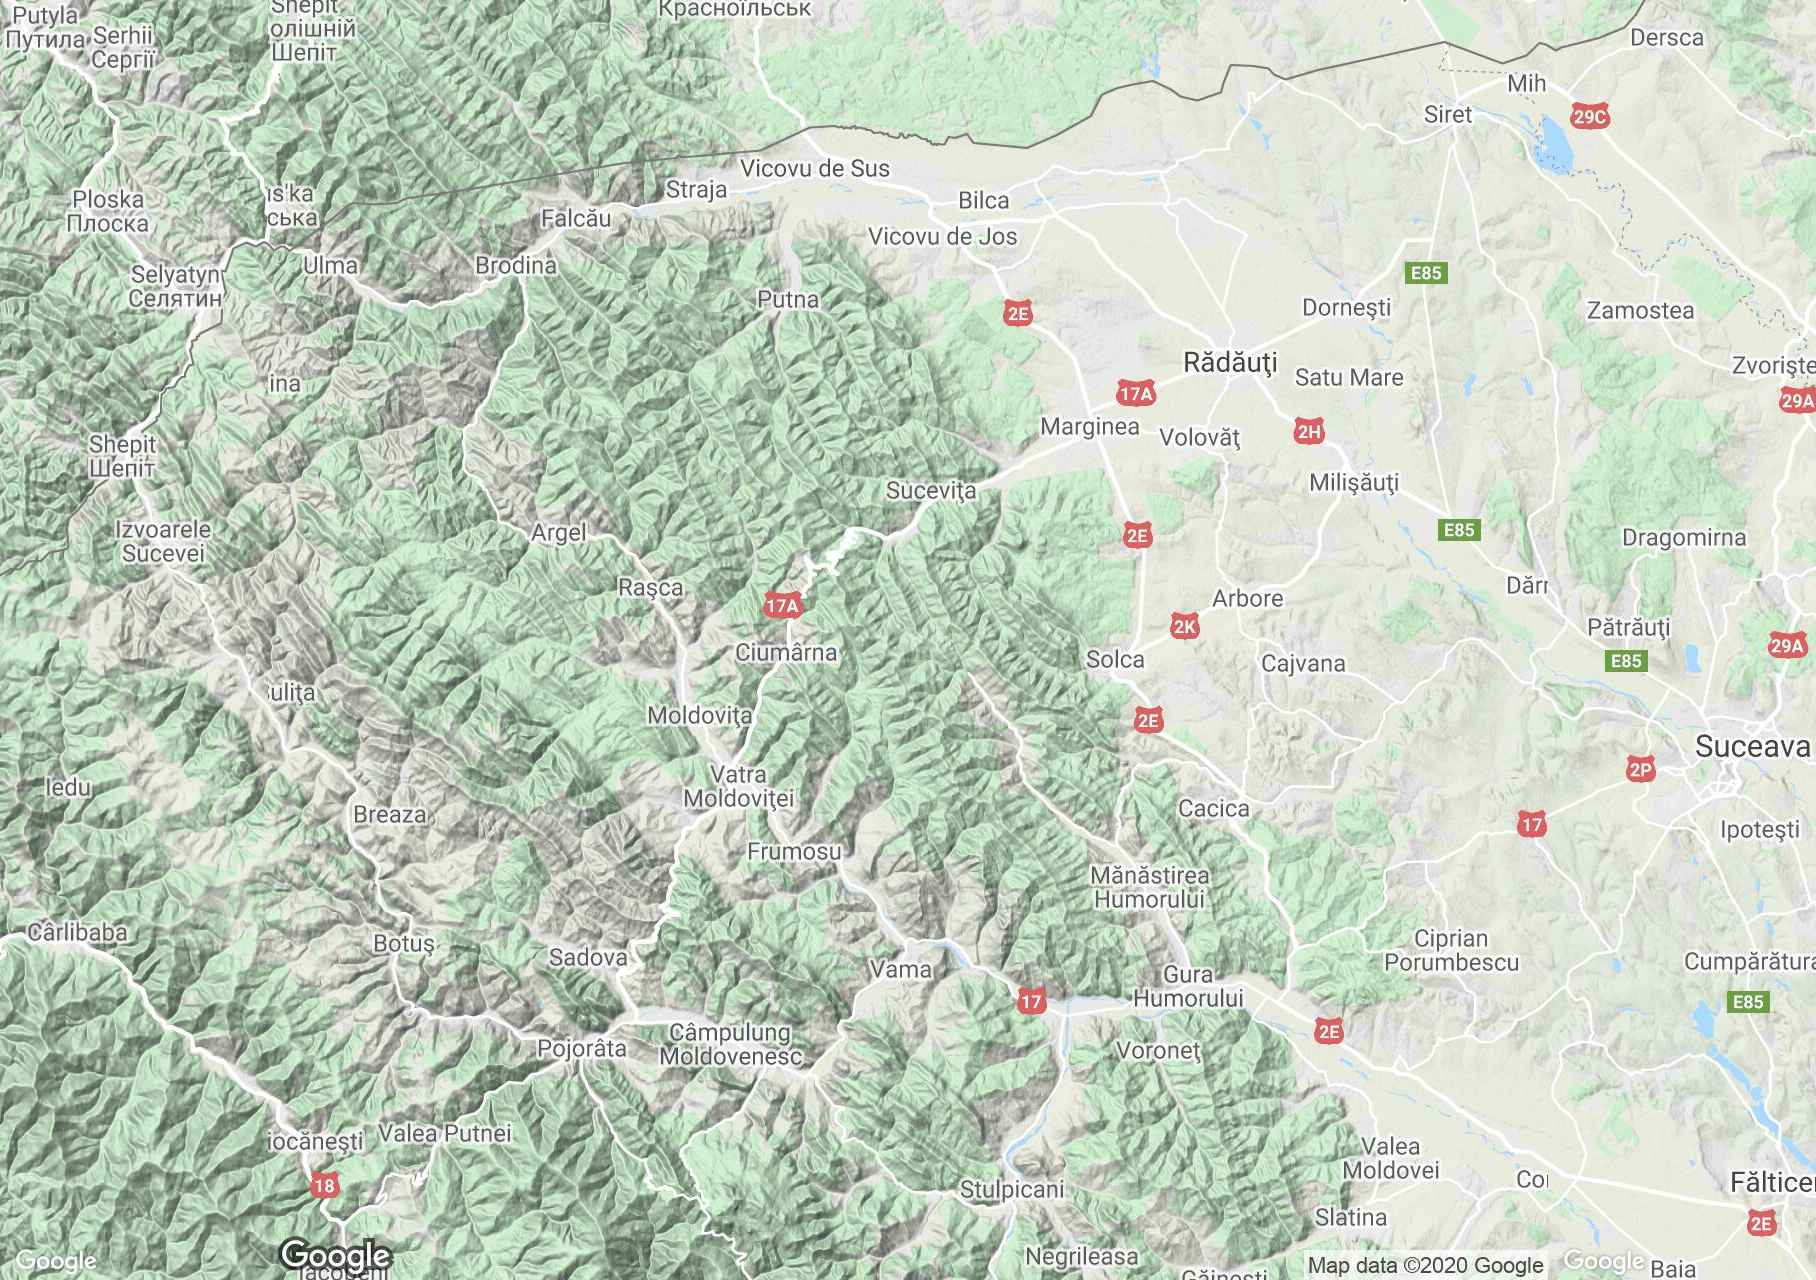 Obcina Mare Mountains, Interactive tourist map